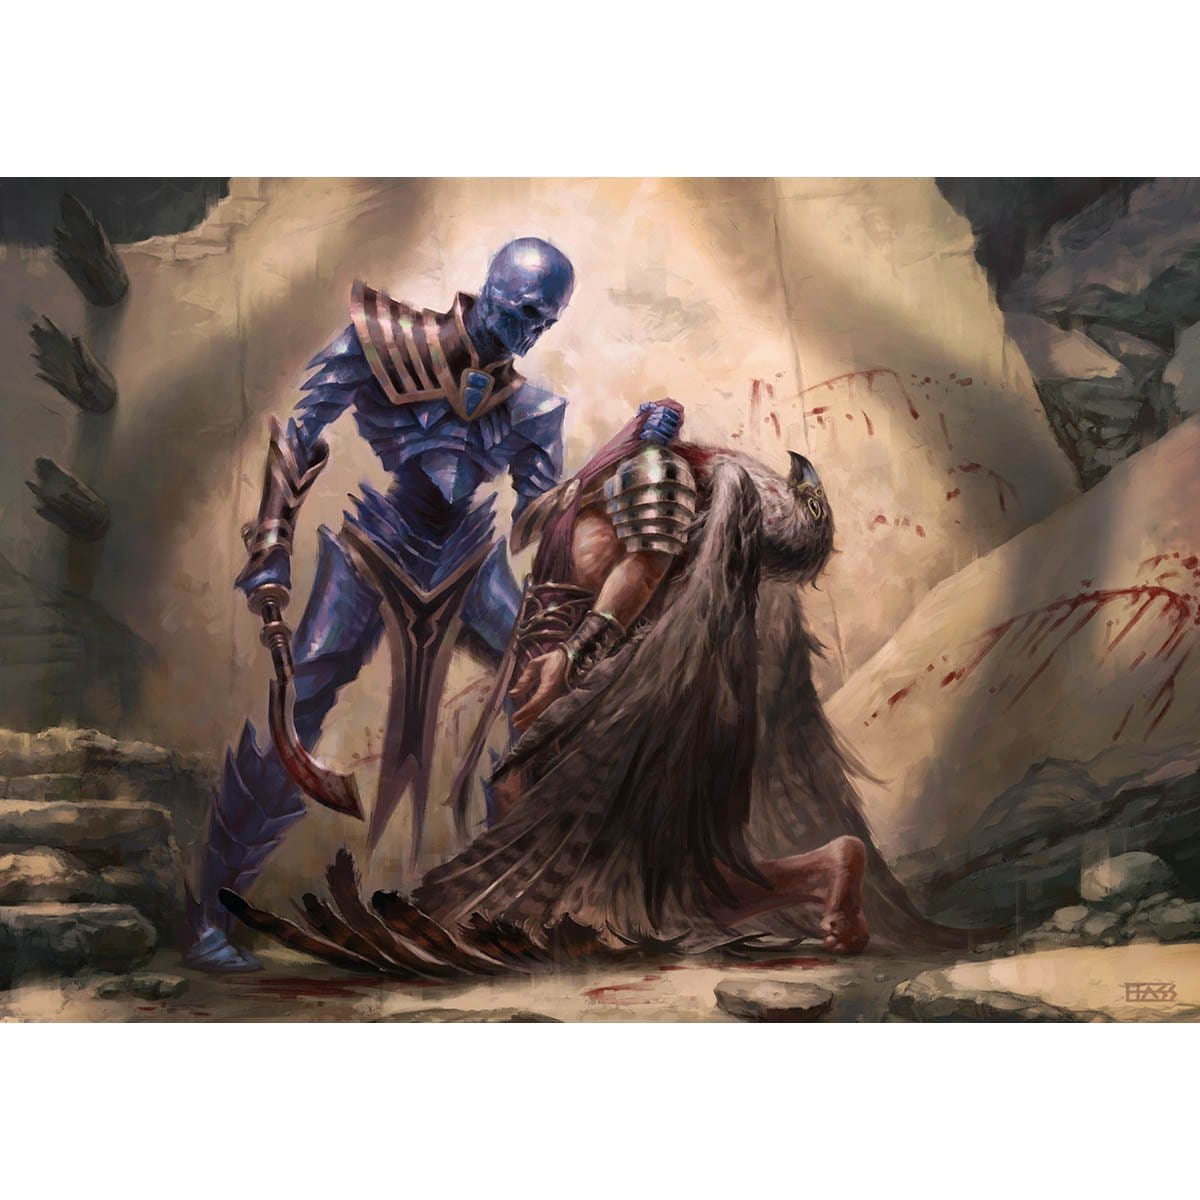 Slaughter Pact Print - Print - Original Magic Art - Accessories for Magic the Gathering and other card games